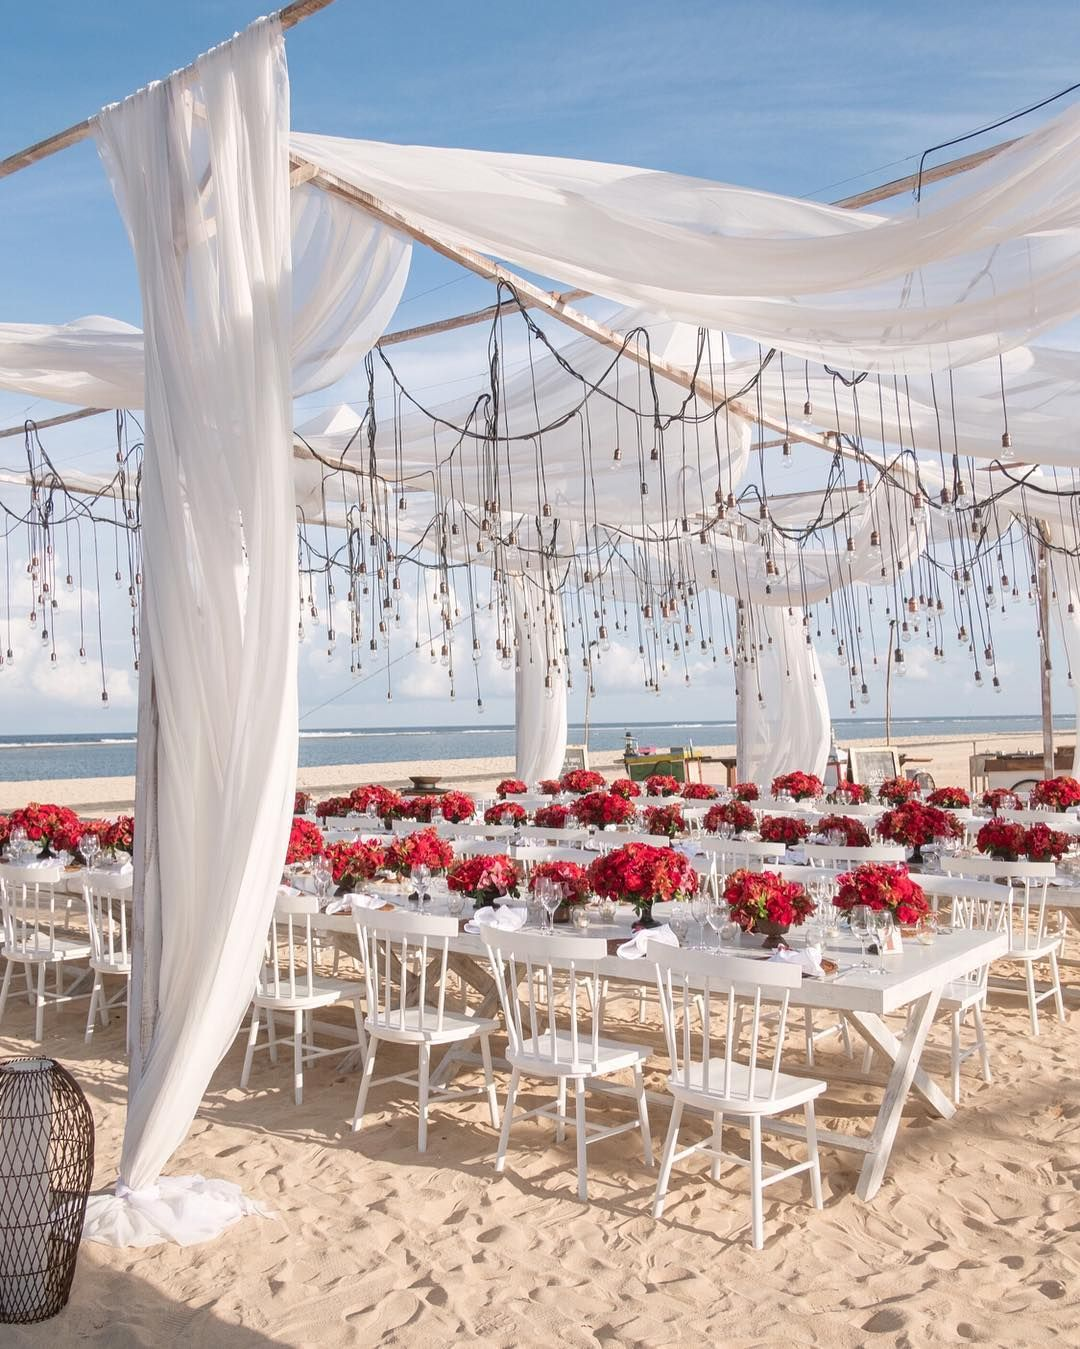 Drapes And Lights Red Flowers By The Beach With Images Beach